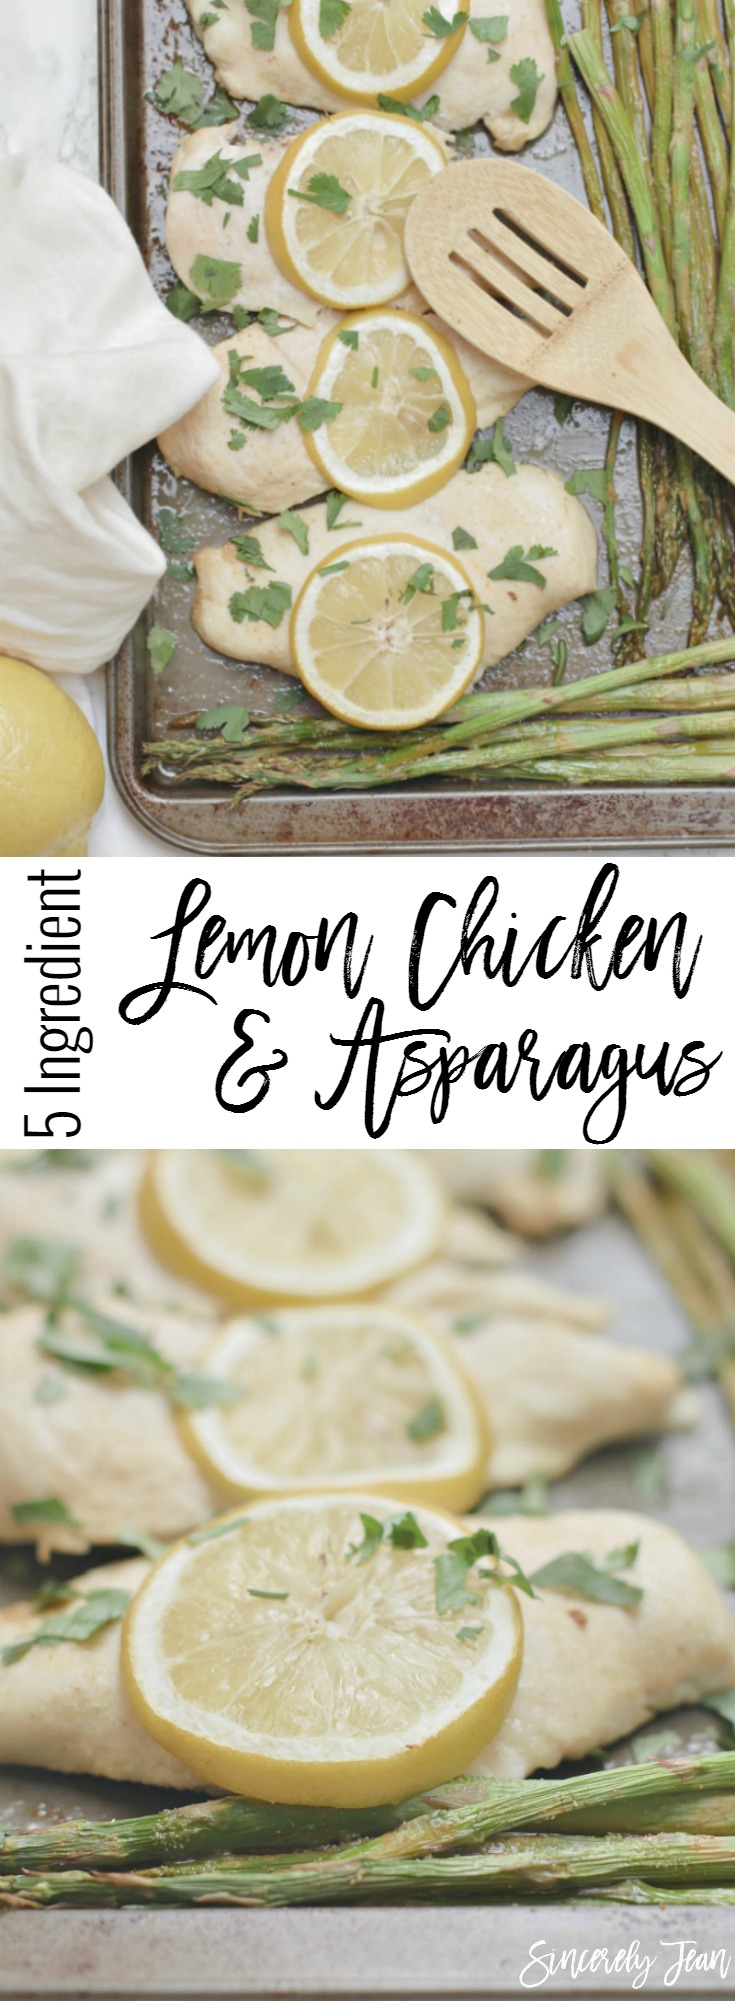 Lemon Chicken and Asparagus Dinner Recipe - Easy Chicken Dinner - Healthy Dinner Recipe - 5 Ingredient Dinner | www.SincerelyJean.com